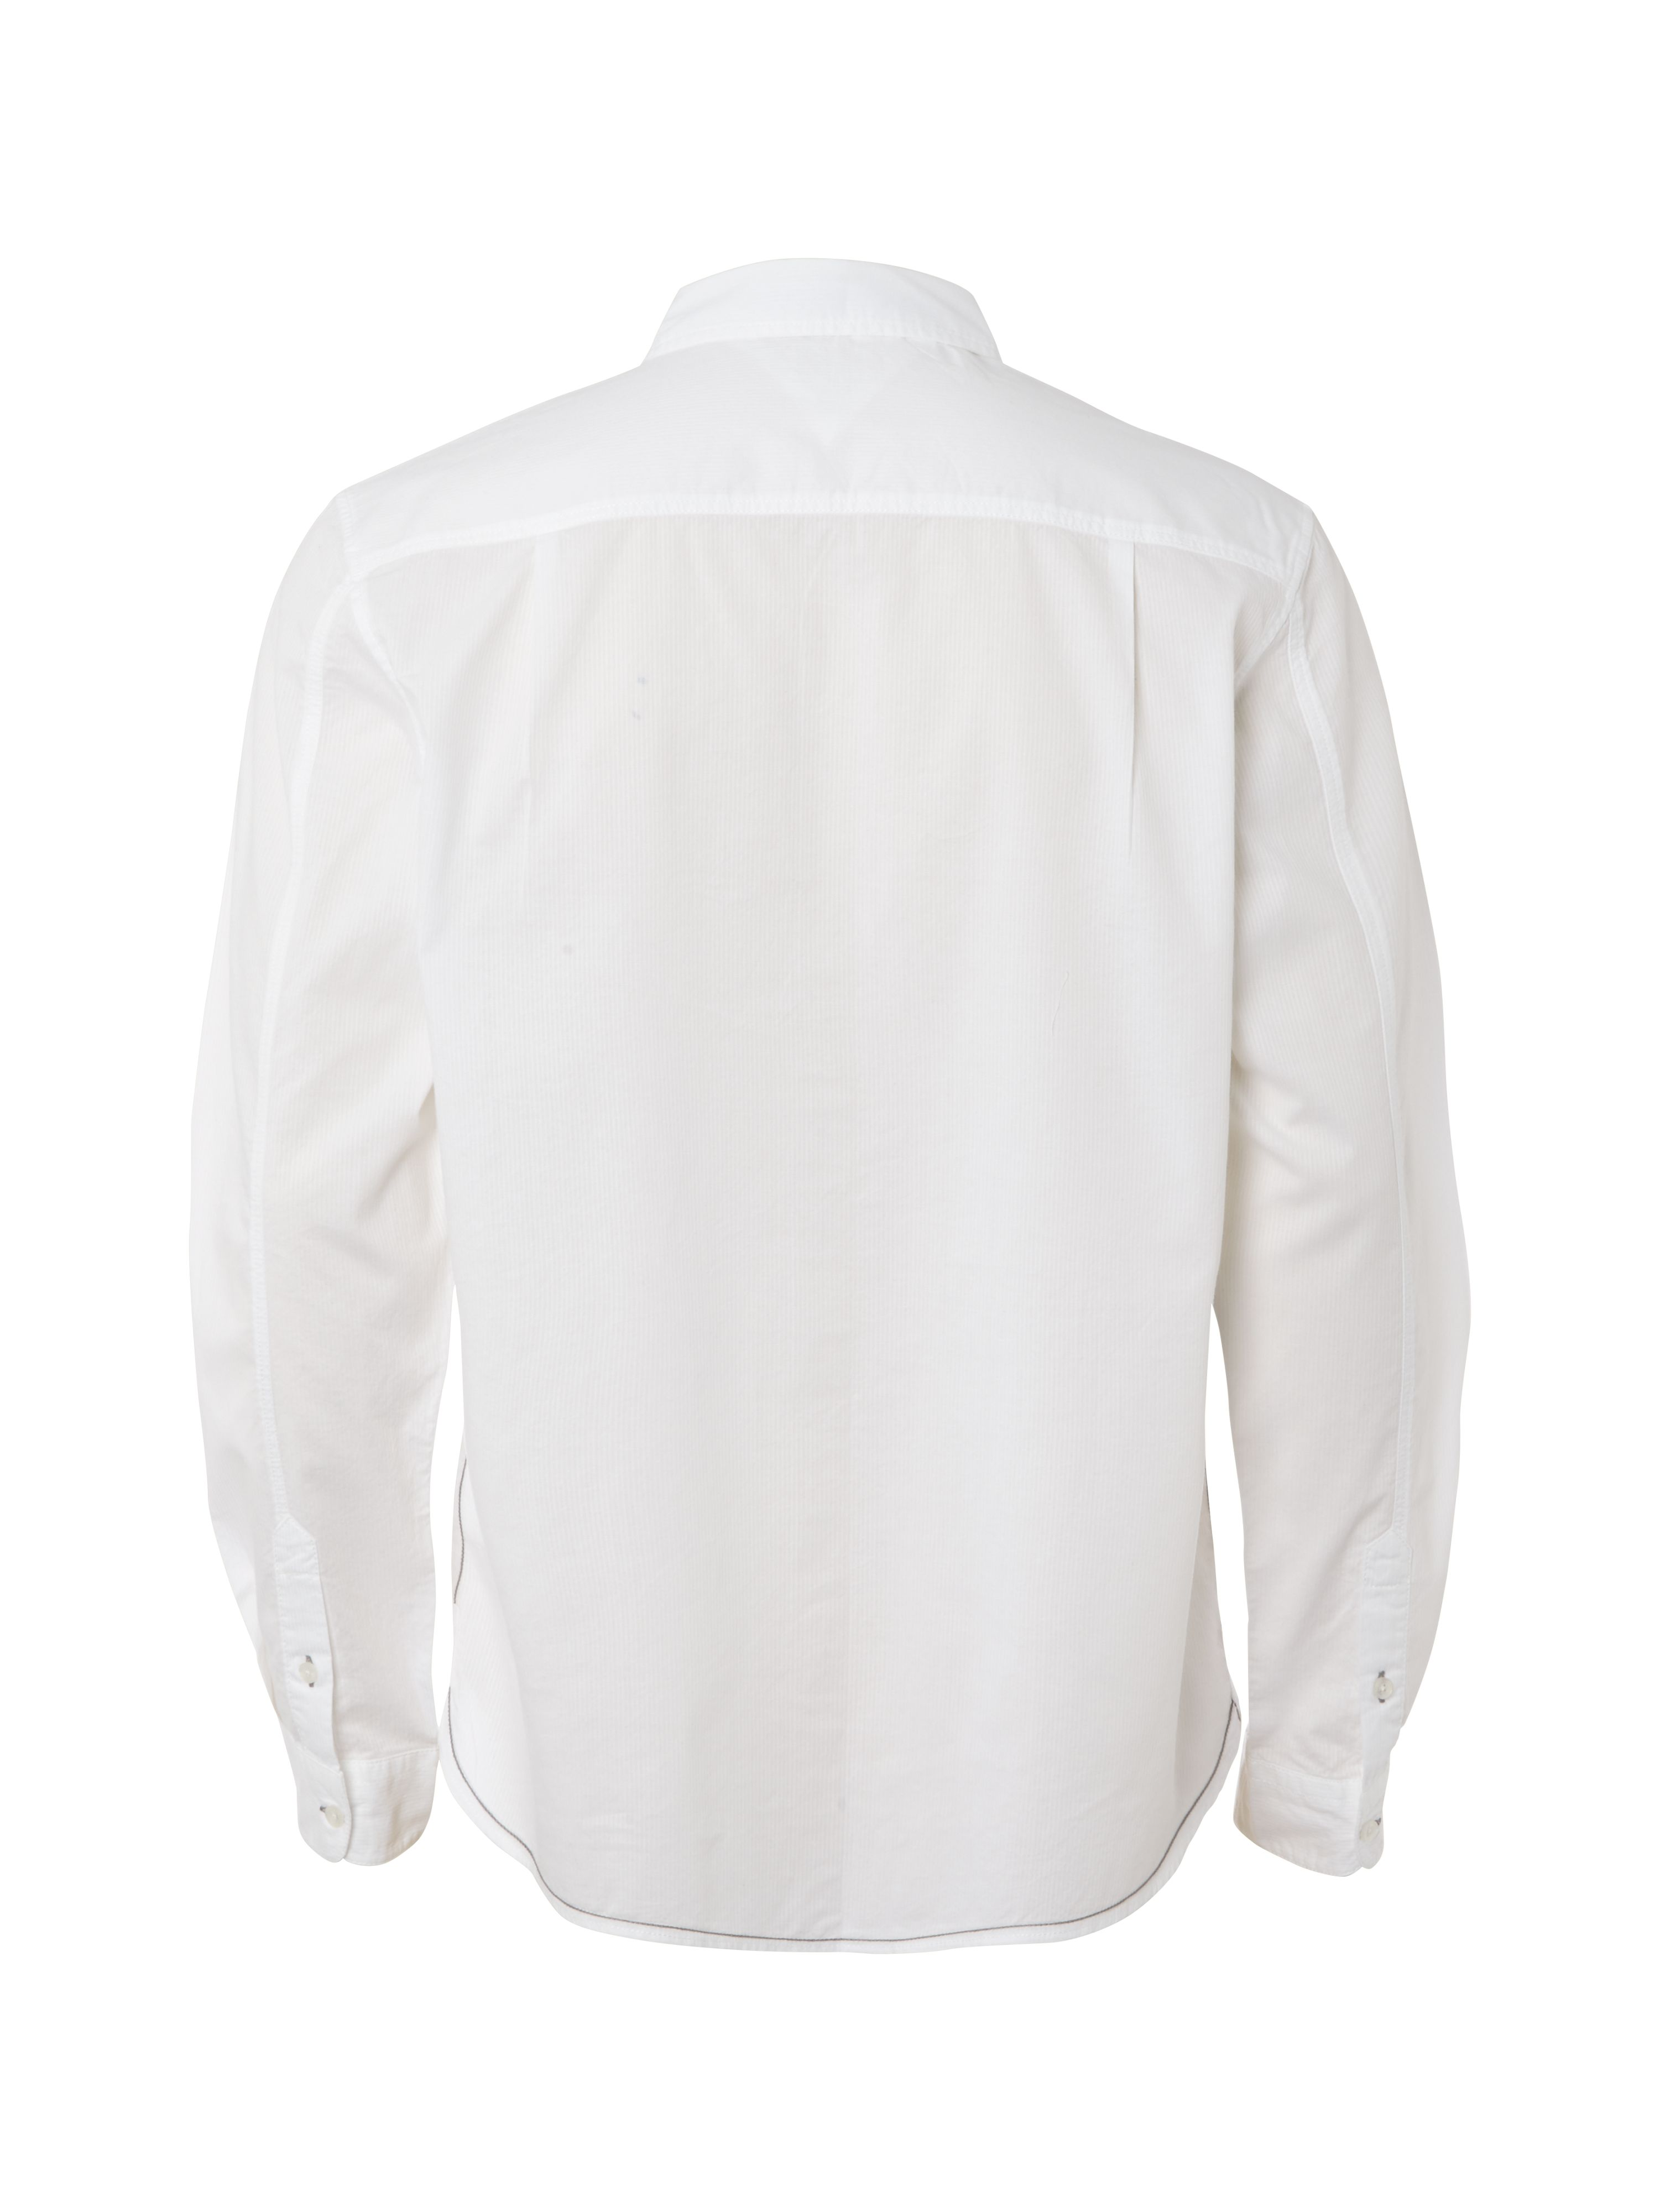 Desert long sleeve shirt